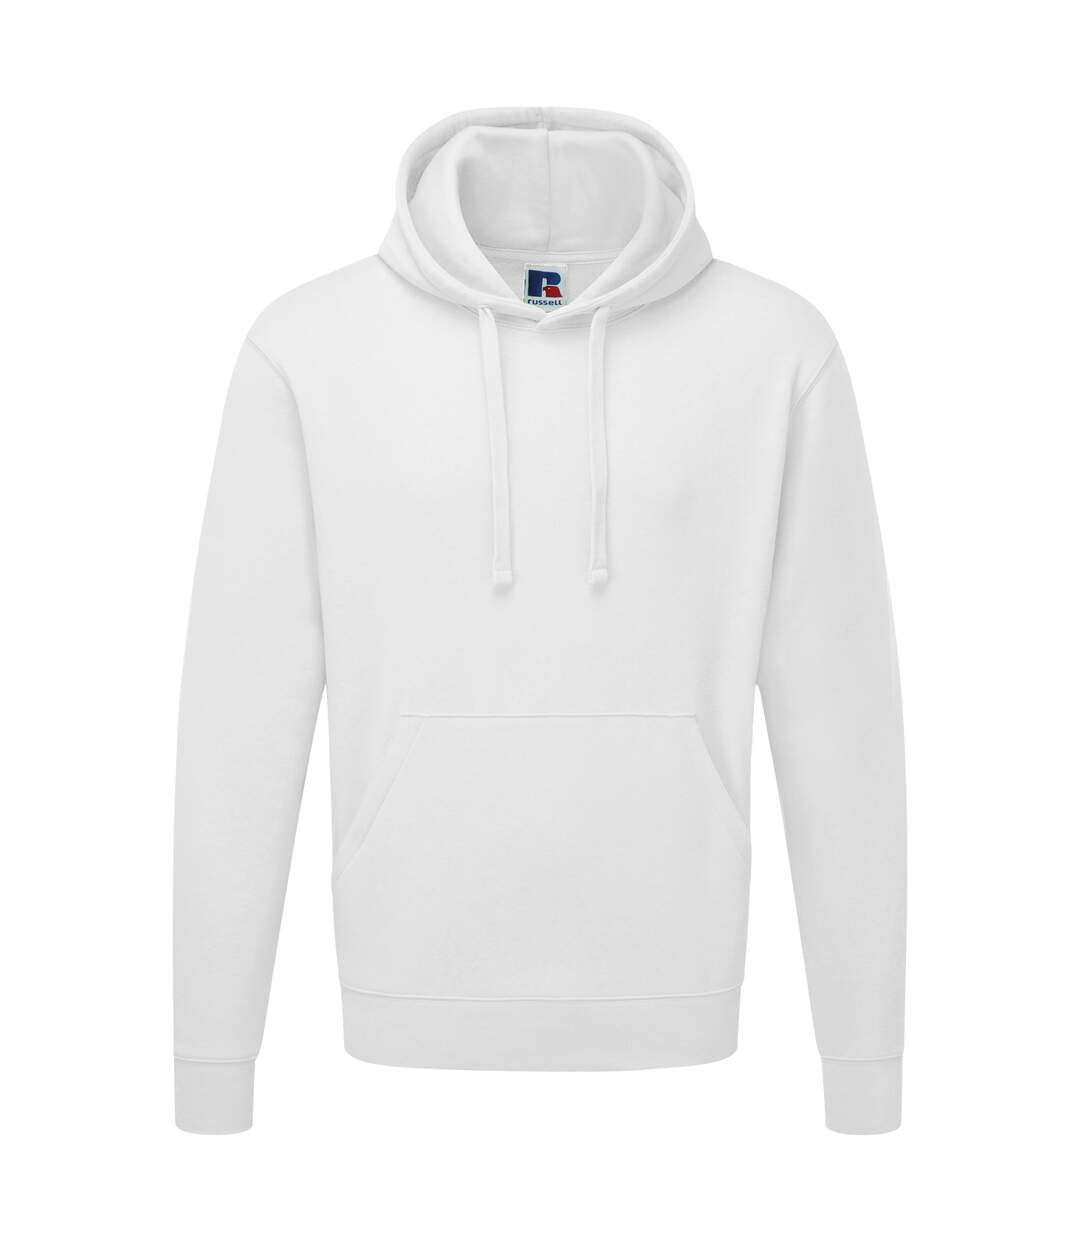 Russell - Sweat À Capuche Authentic - Homme (Gris clair) - UTBC1498